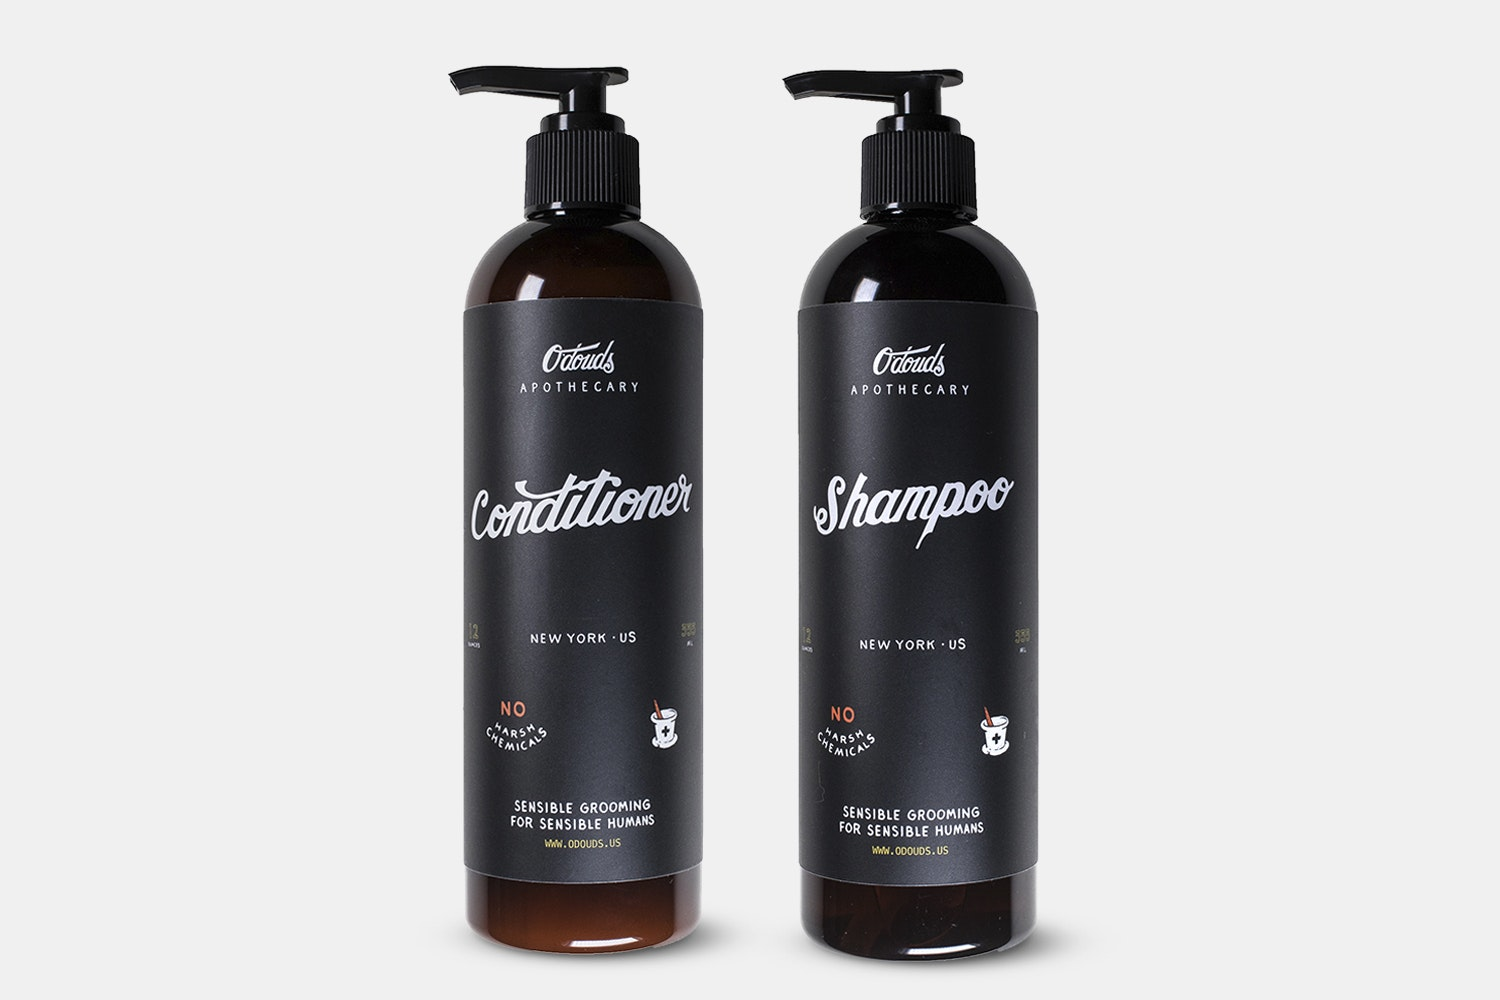 O'Douds Apothecary Shampoo & Conditioner (2-Pack)